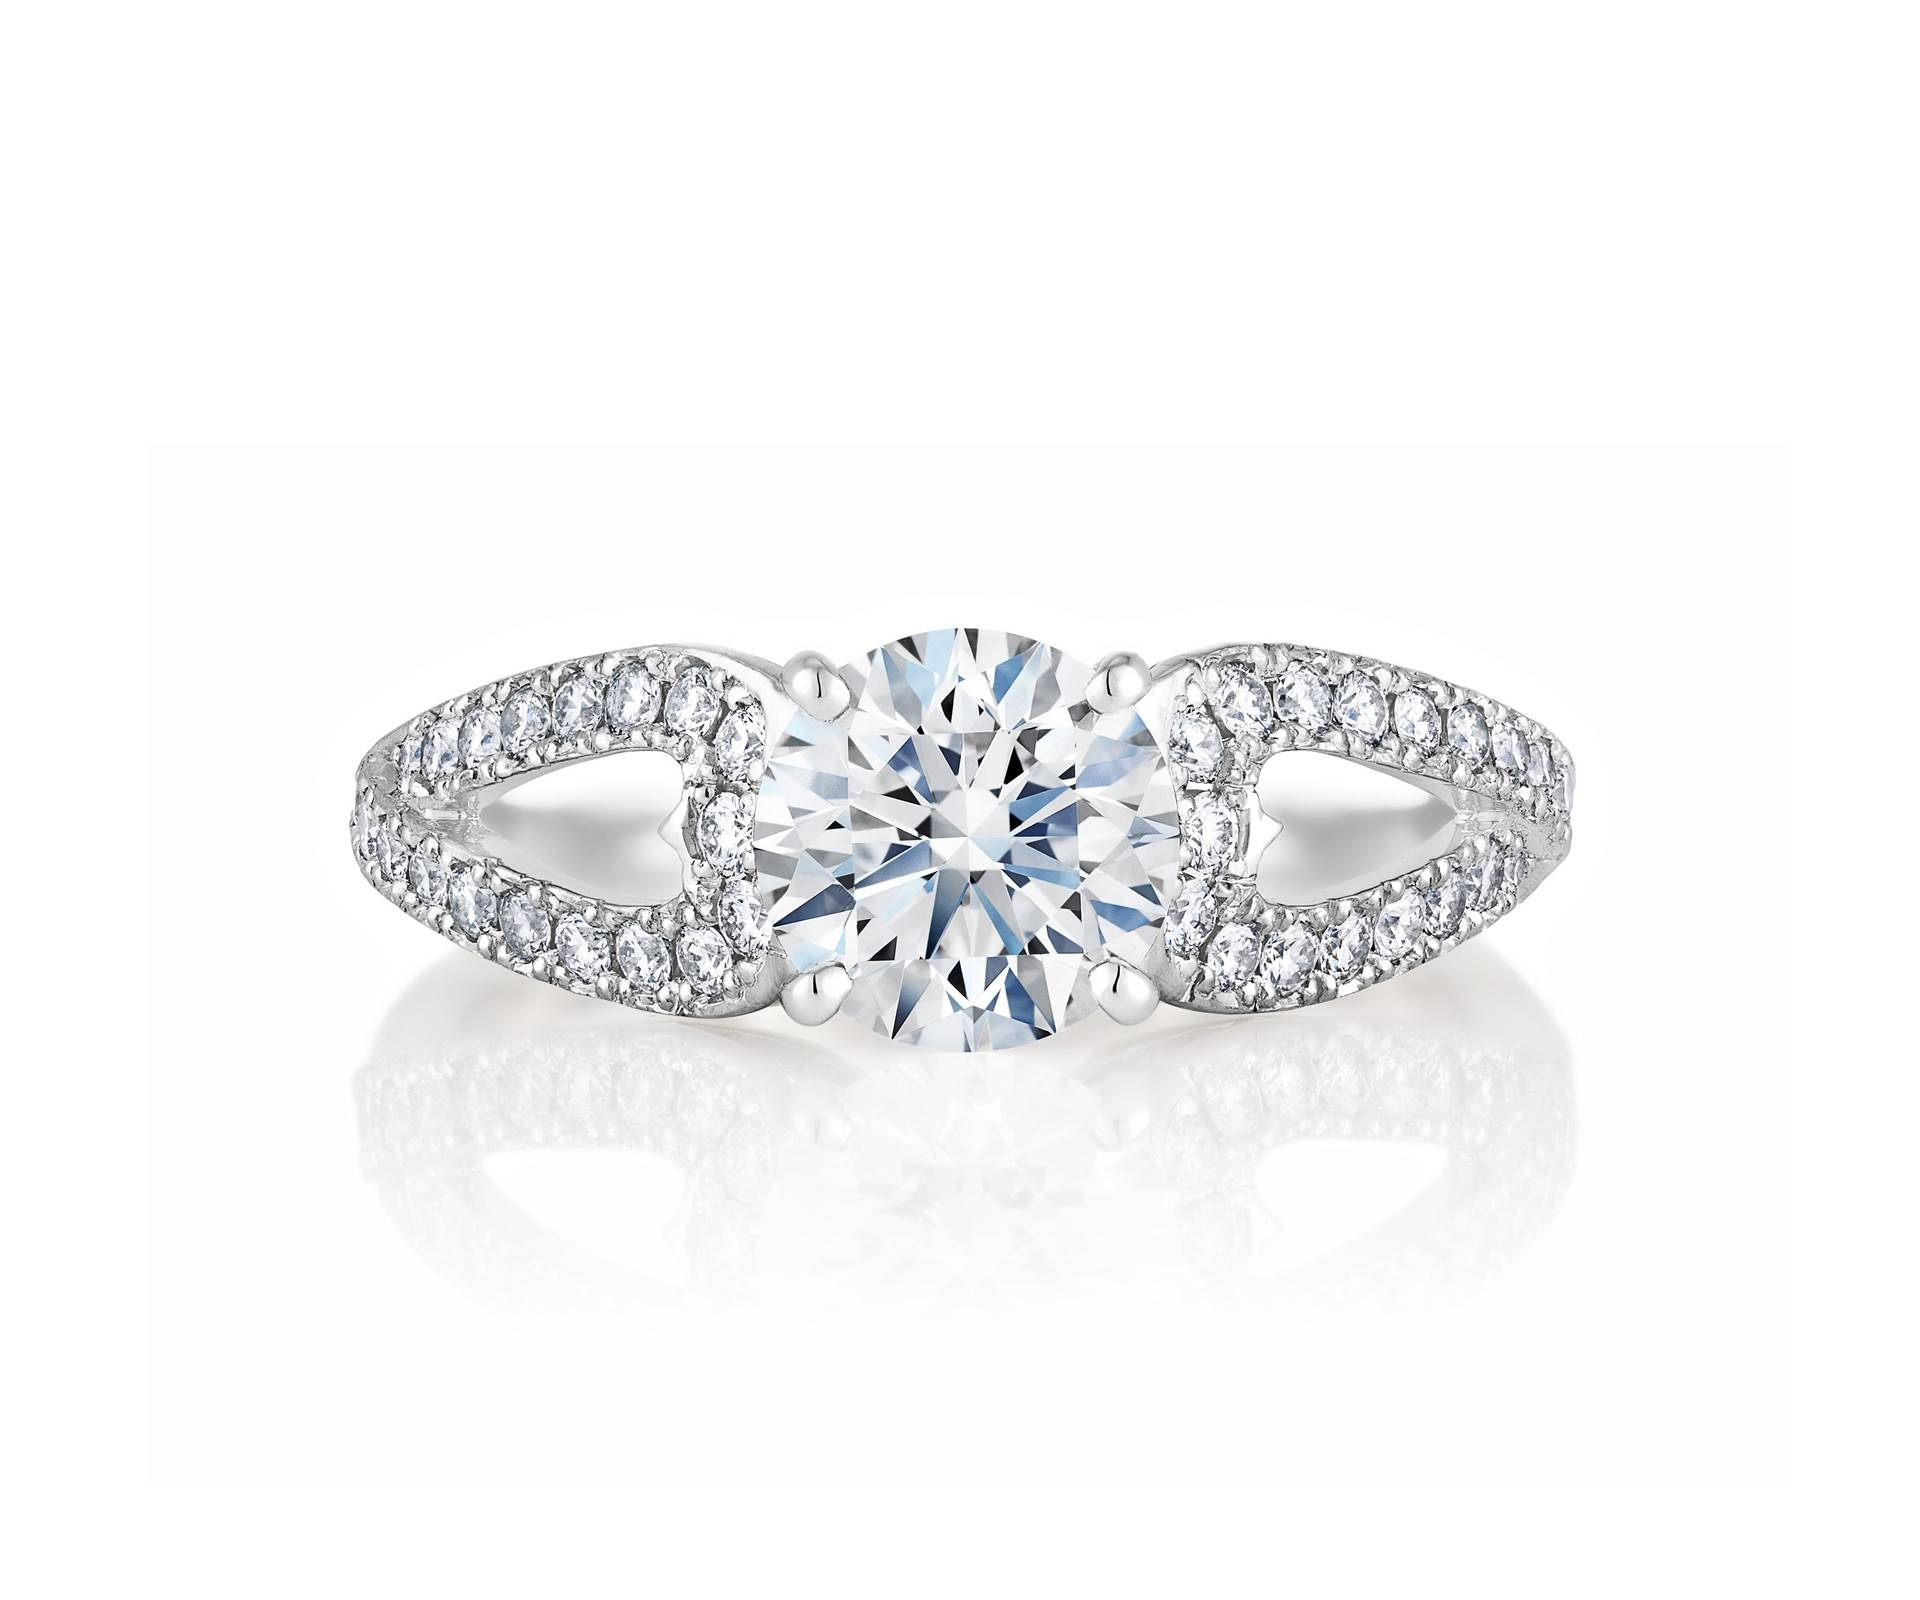 Diamond Engagement Rings & Promise Rings | De Beers With Regard To Spiral Engagement Rings (View 14 of 15)